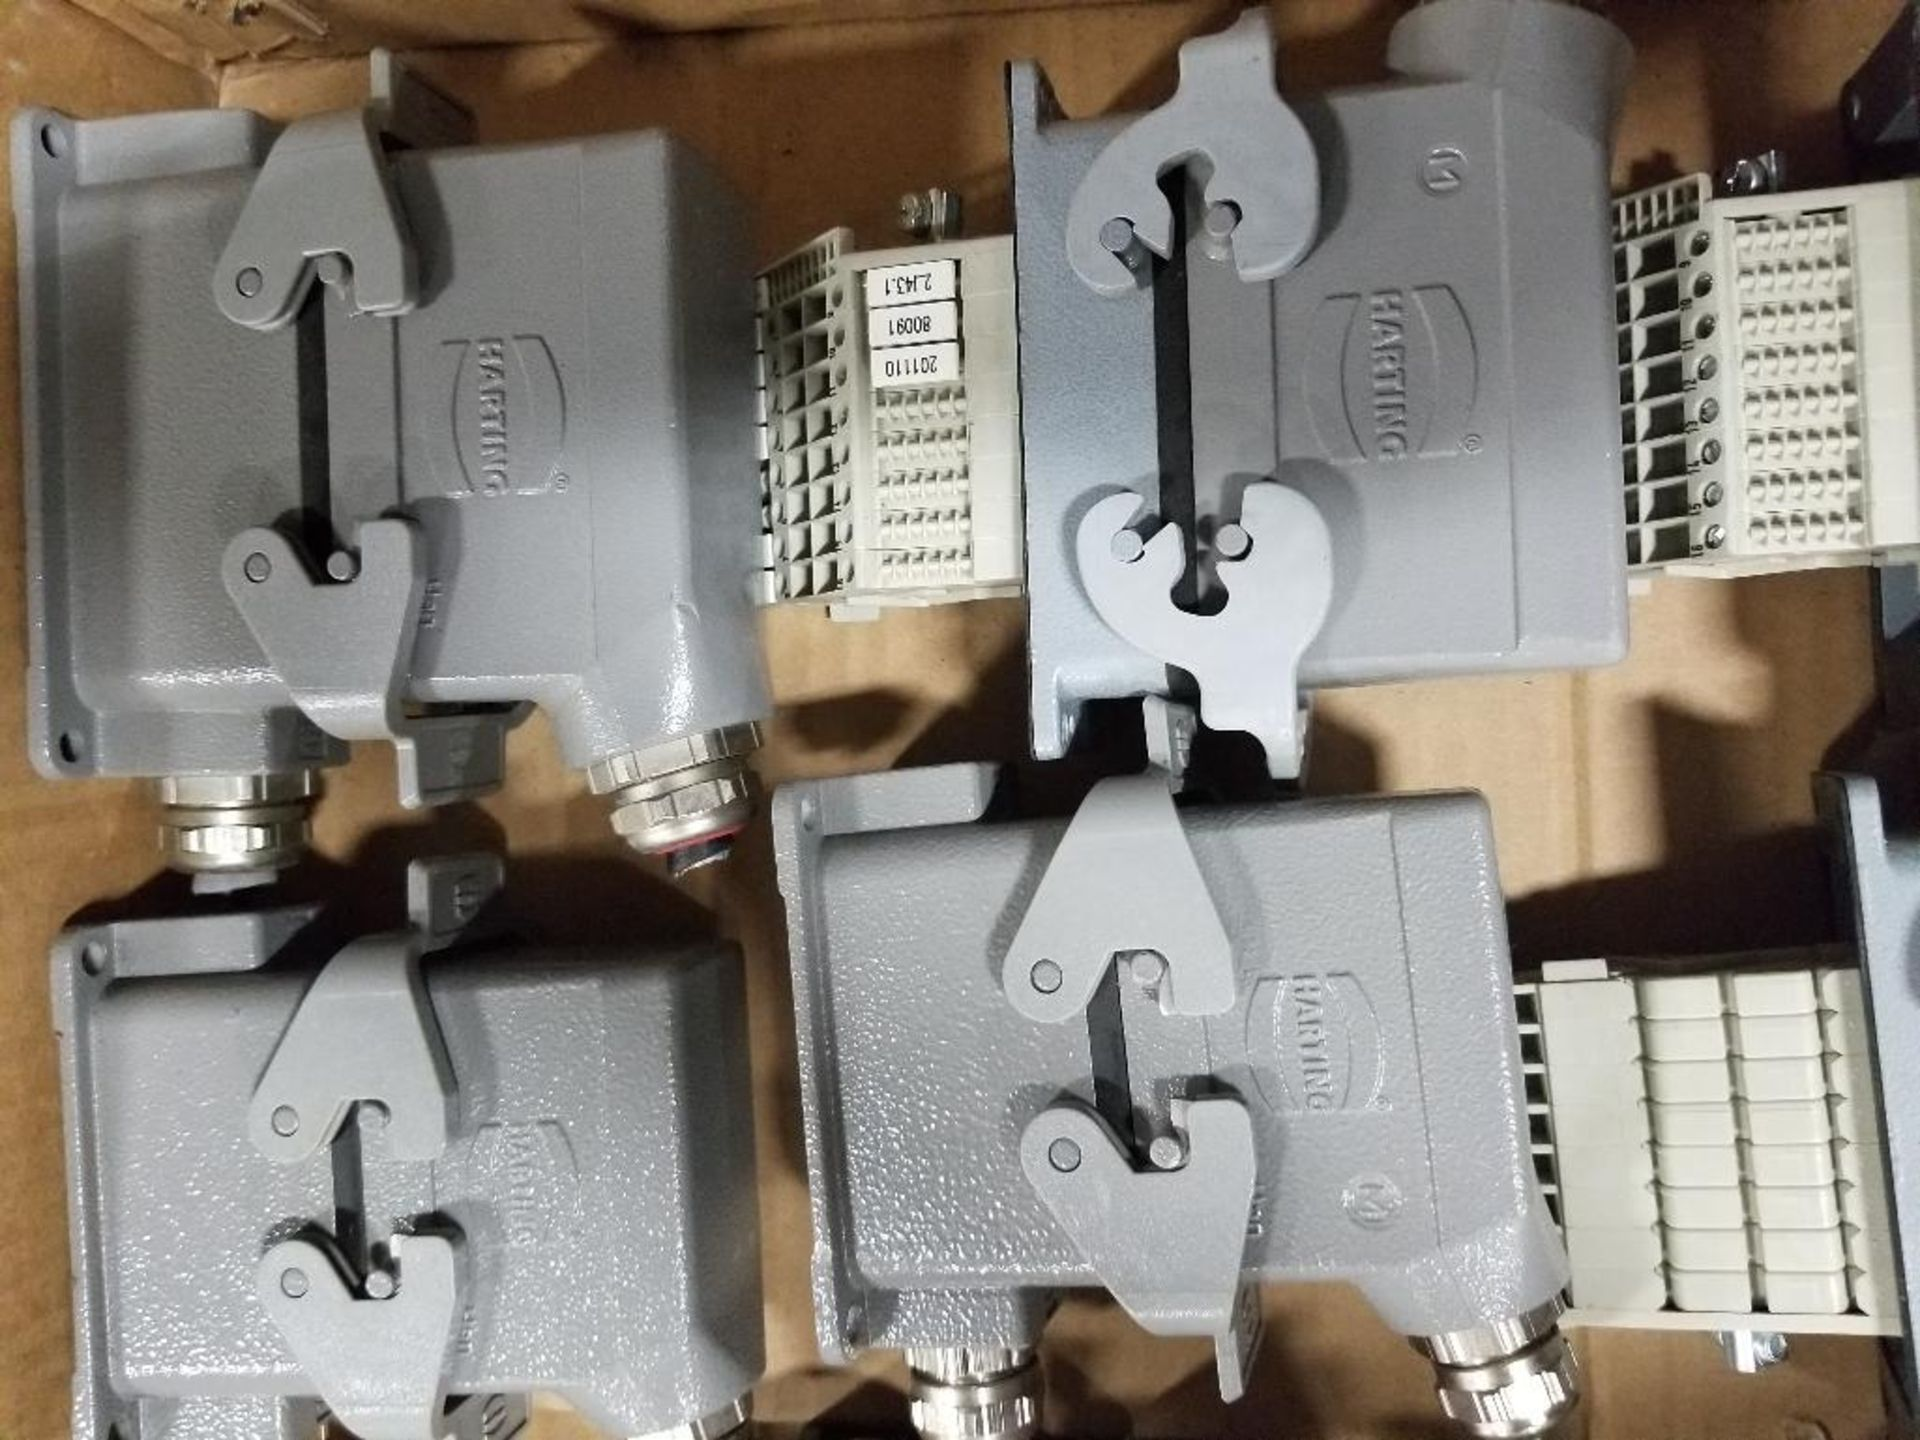 Qty 16 - Harting connection plugs. - Image 5 of 5